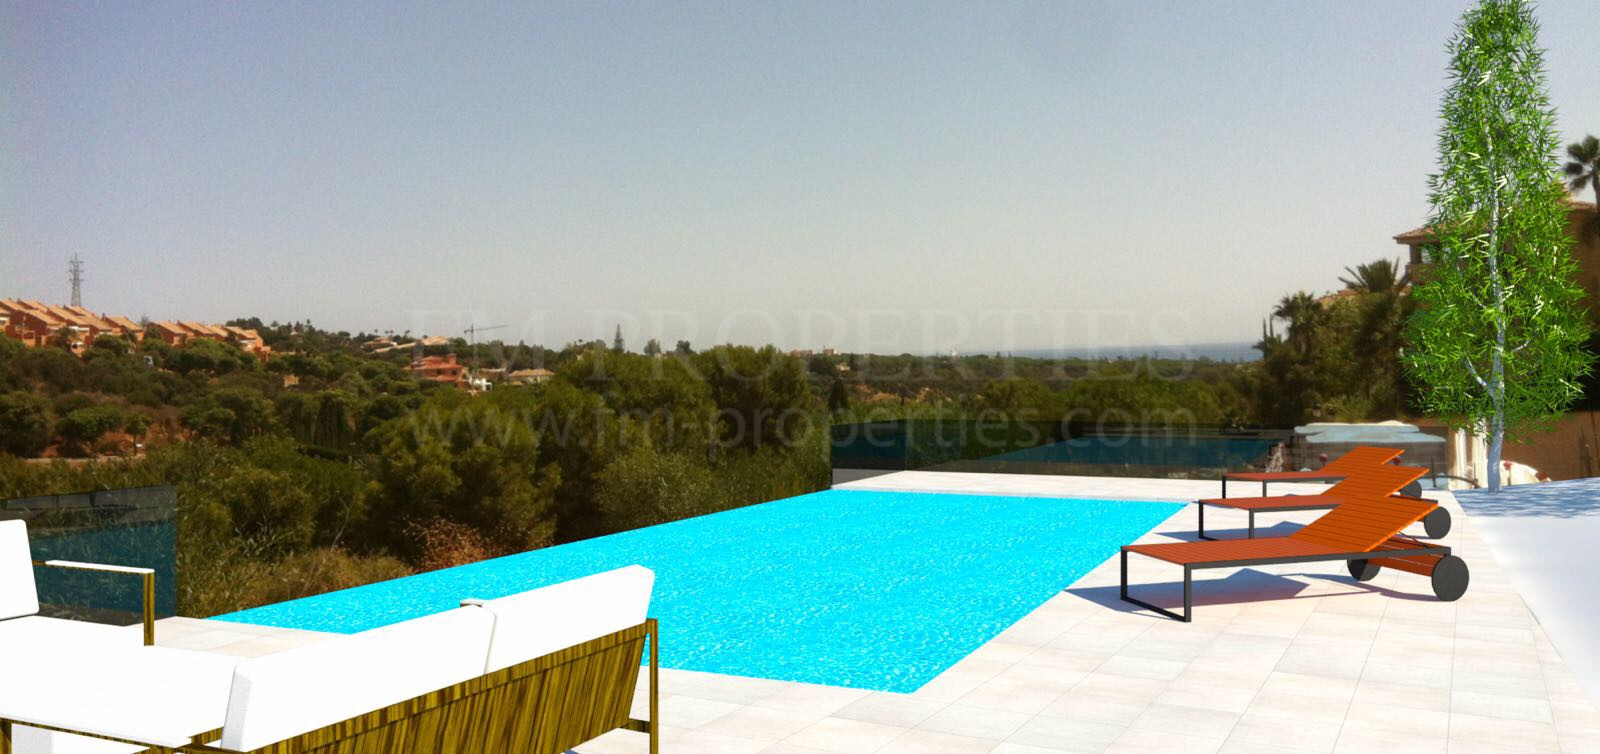 Photo Gallery - Stunning, newly constructed villa in Elviria, frontline to the Santa Maria golf course.